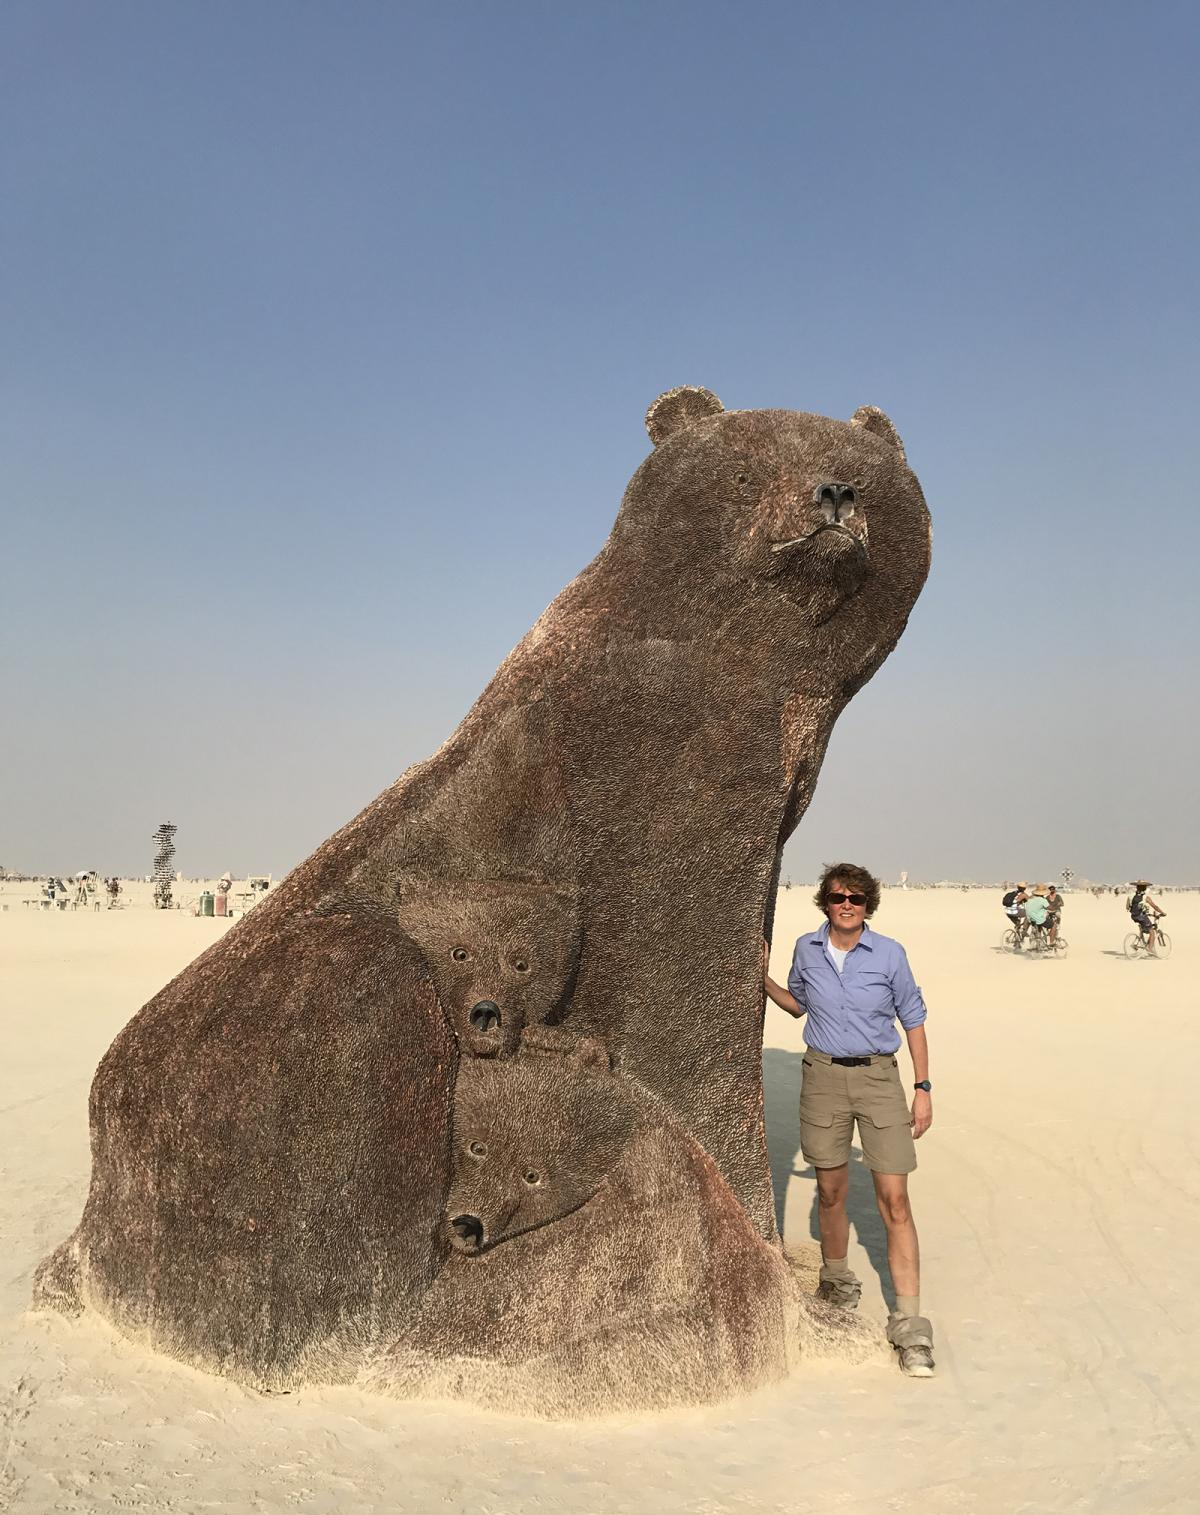 This is a photograph of Stephanie Stebich standing next to the Ferguson's Ursa Mater at Burning Man.